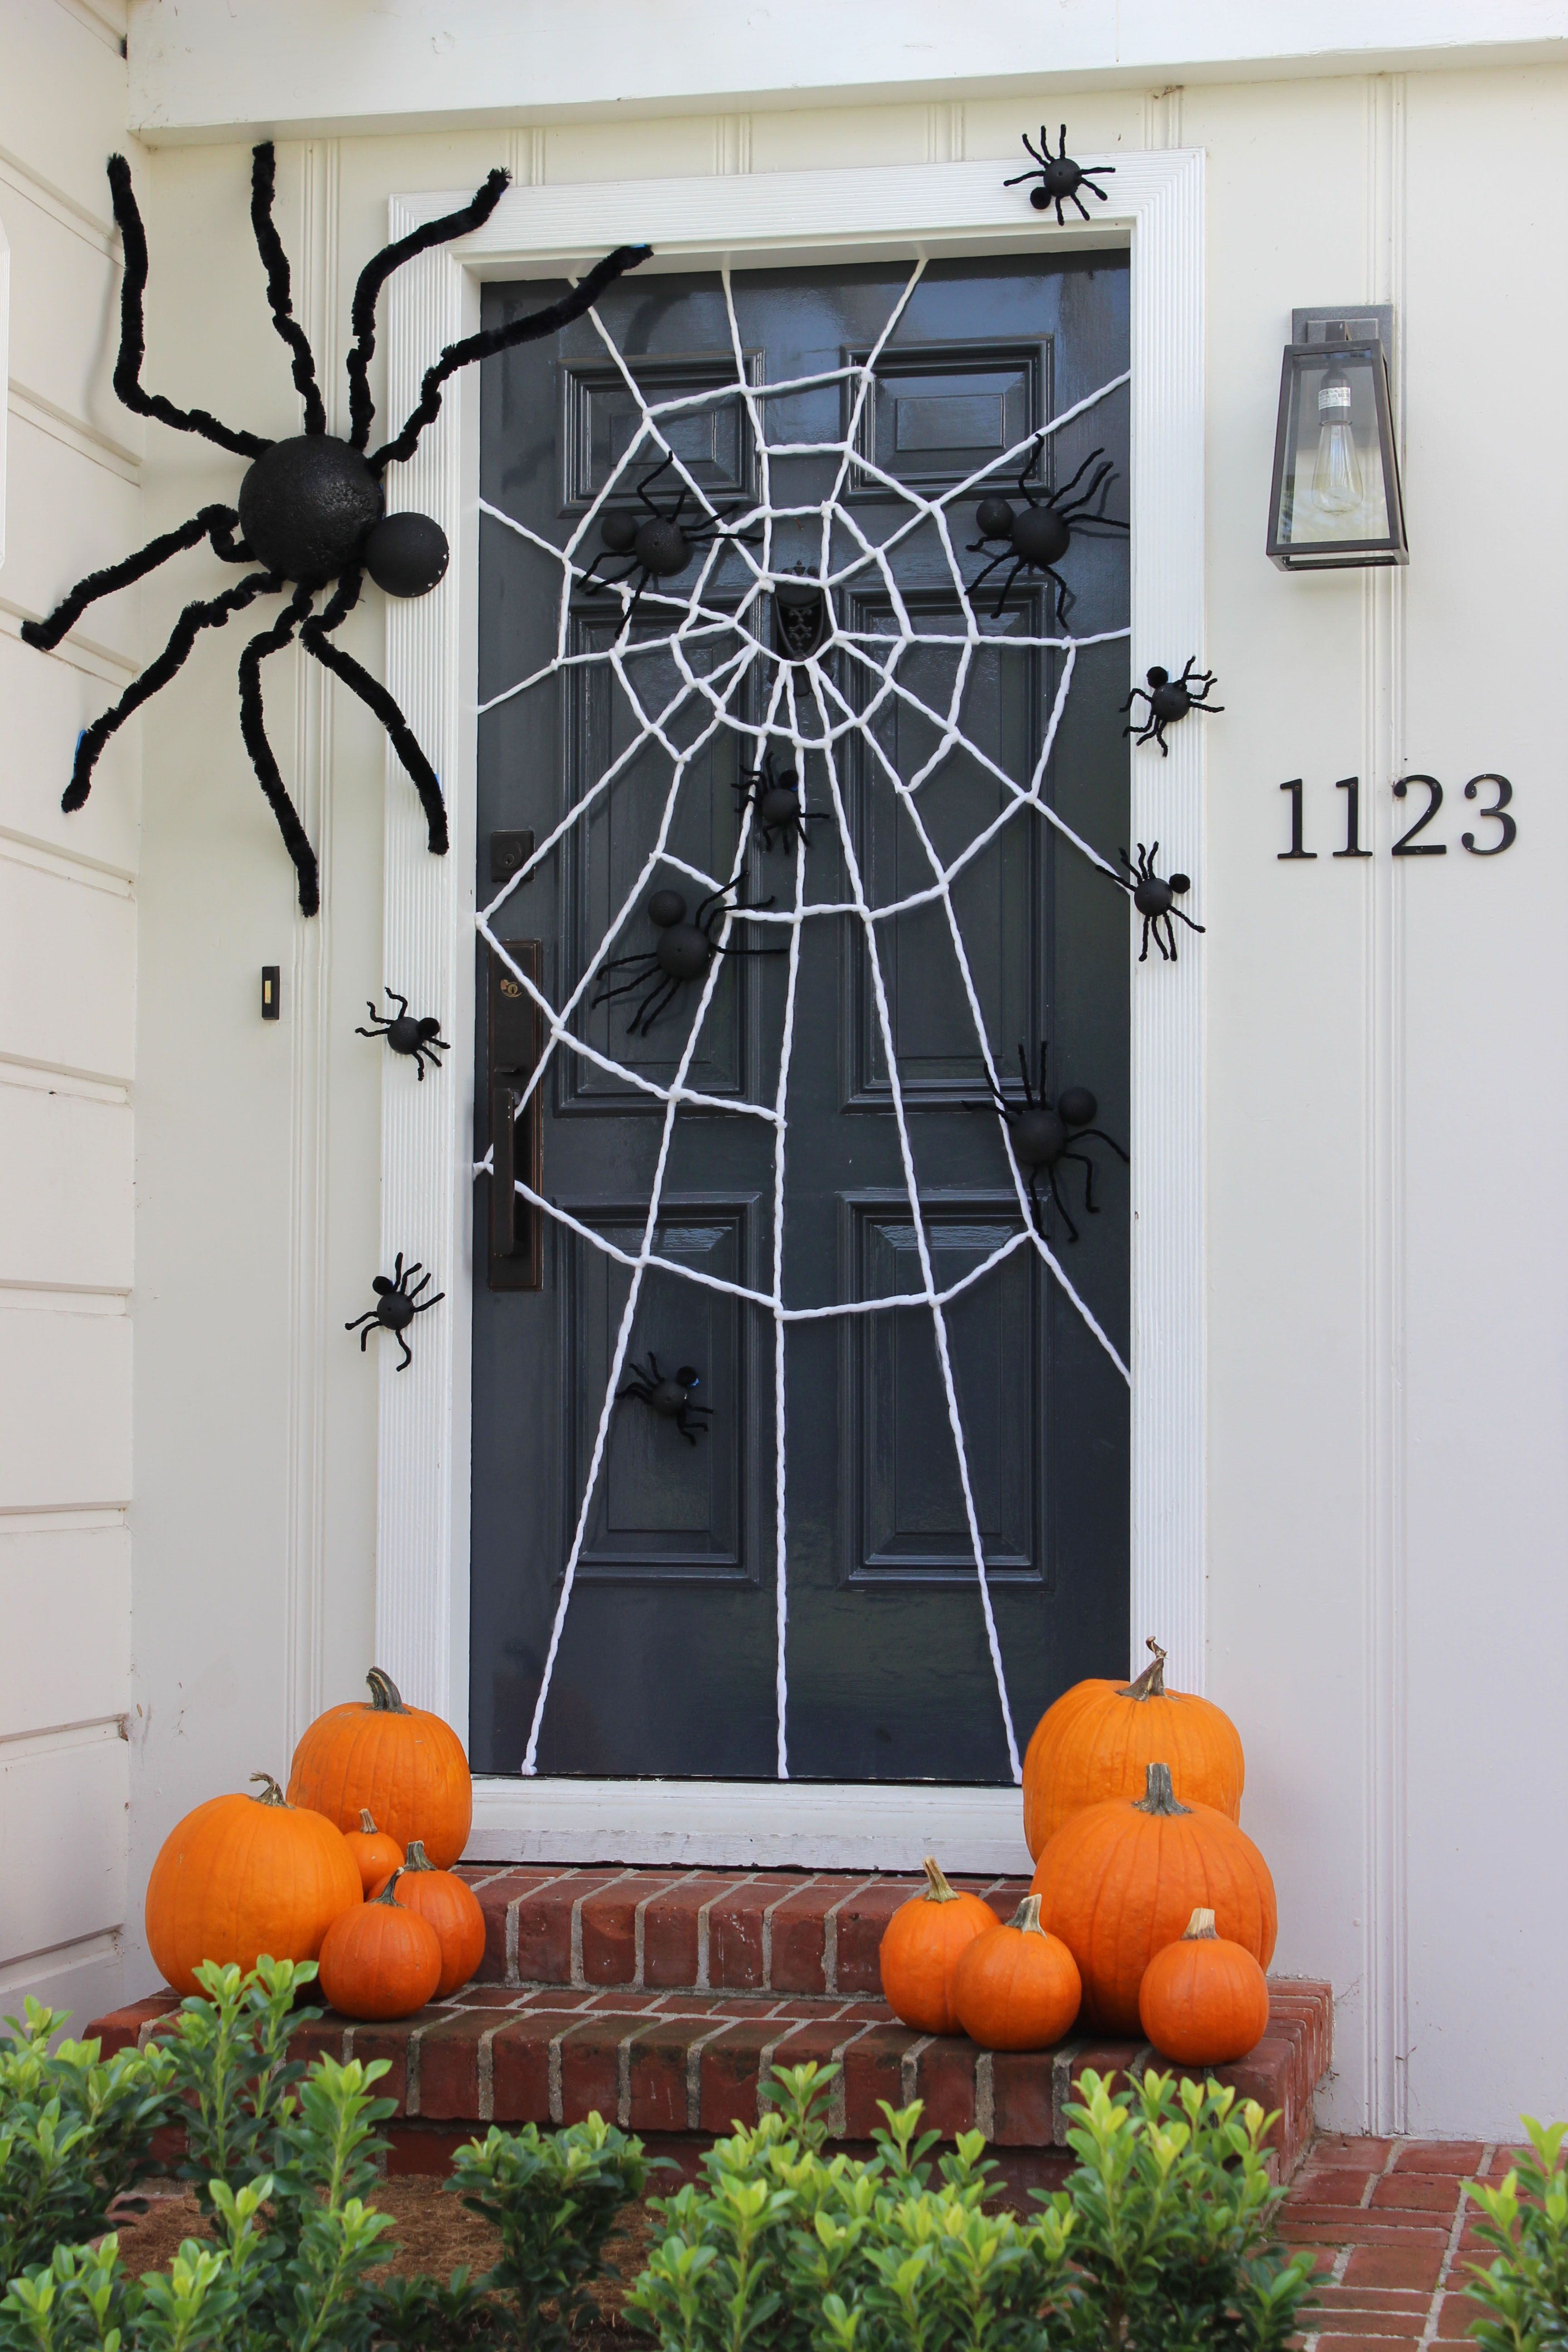 8 Fun Halloween Door Ideas - Halloween Door Decorations Doors - Halloween Door Decorations